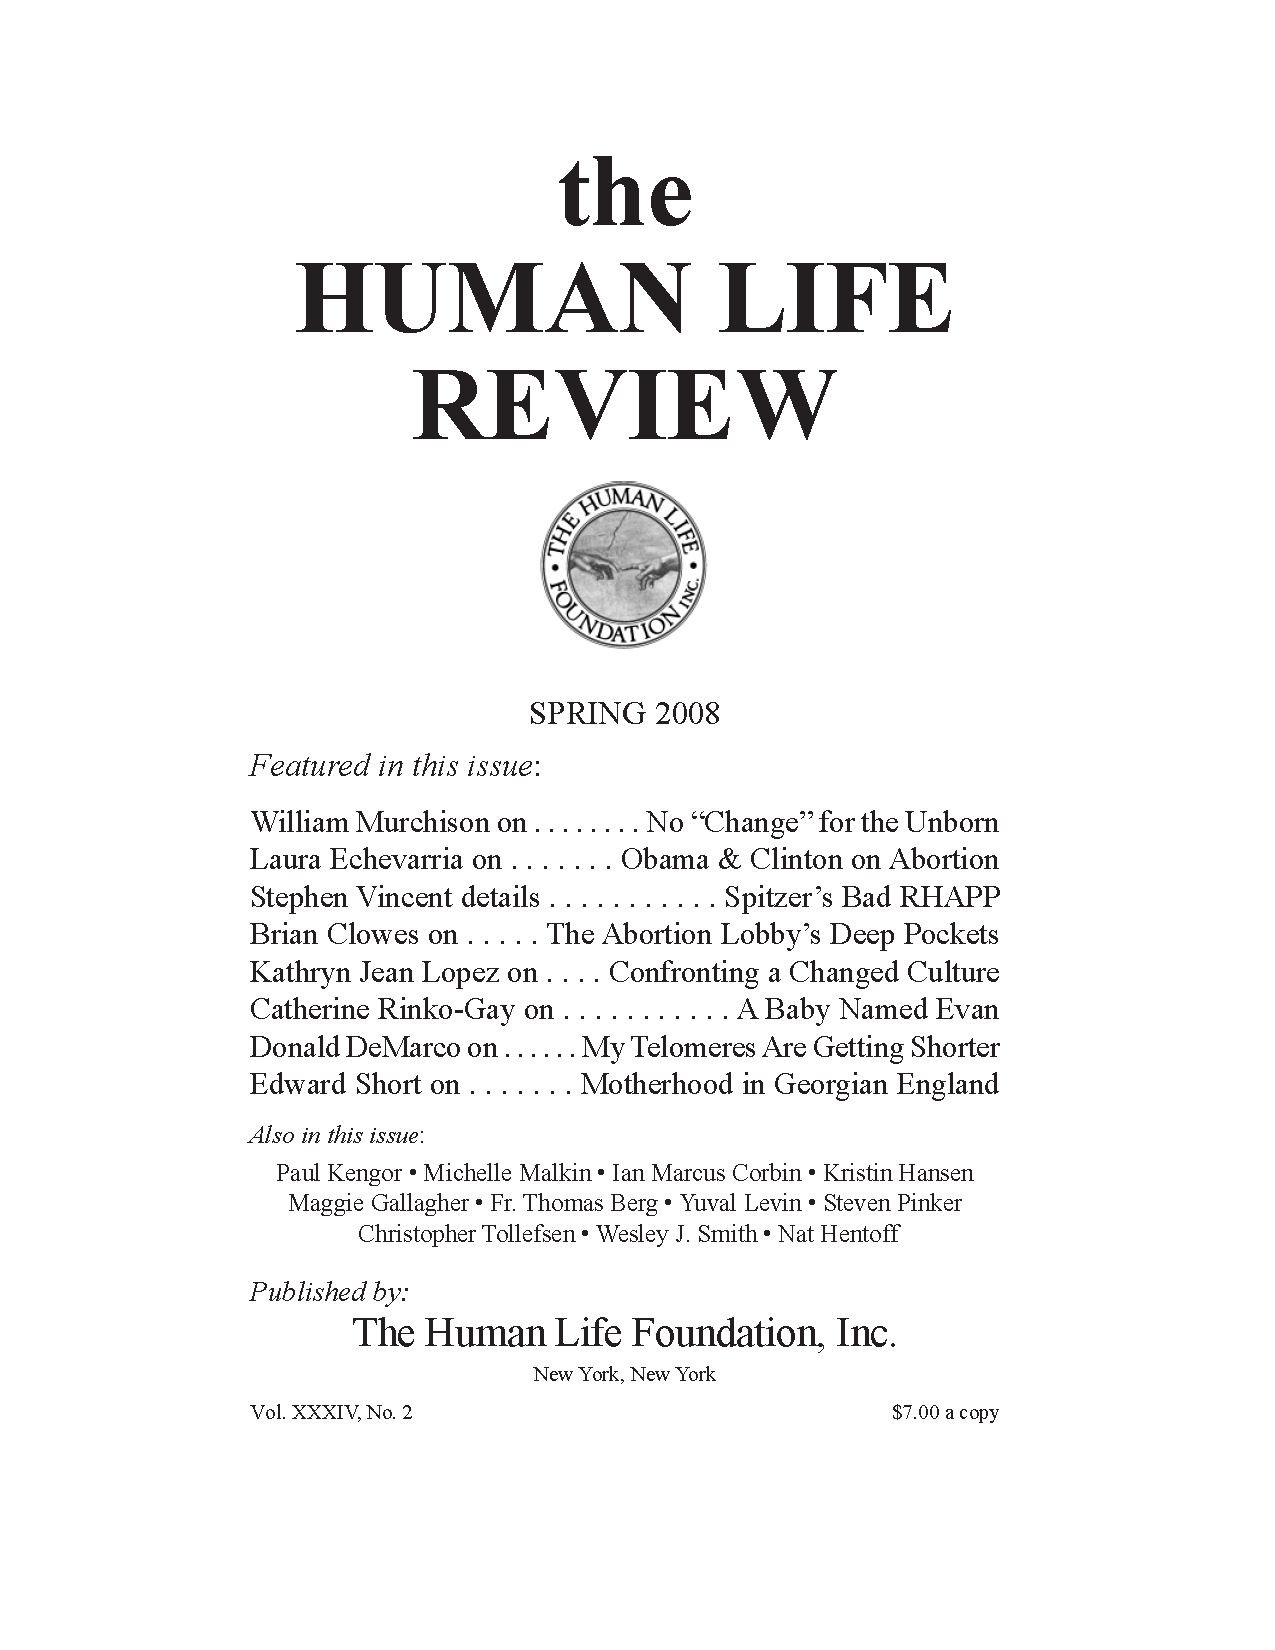 Tis Season For Temporary Moratorium On >> The Human Life Review Spring 2008 The Human Life Review